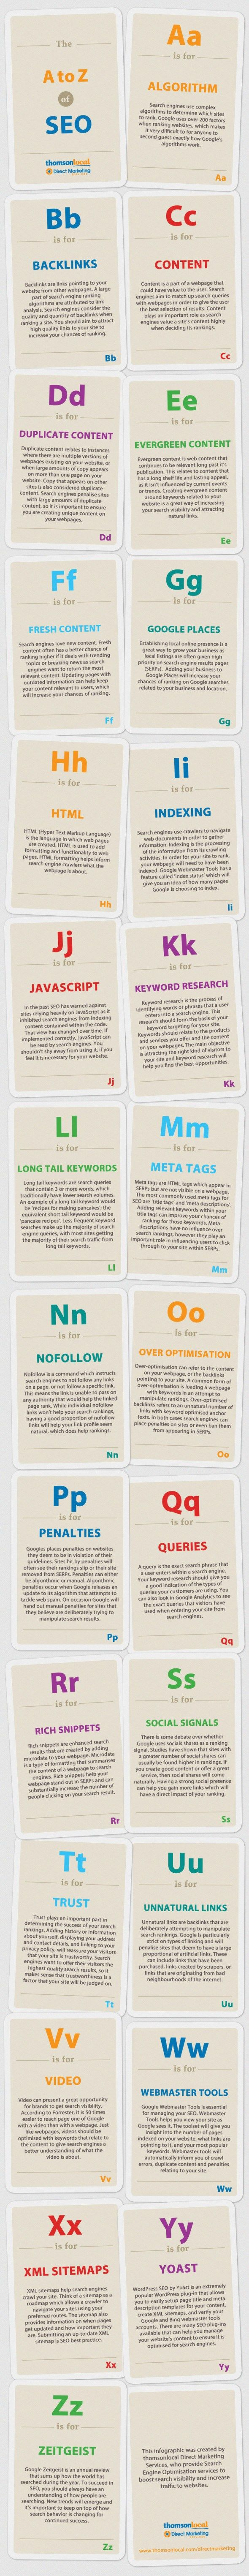 The A to Z of #SEO ! #Marketing #Web #Business #Entrepreneur #Startup #Ecommerce #Entreprise #Content